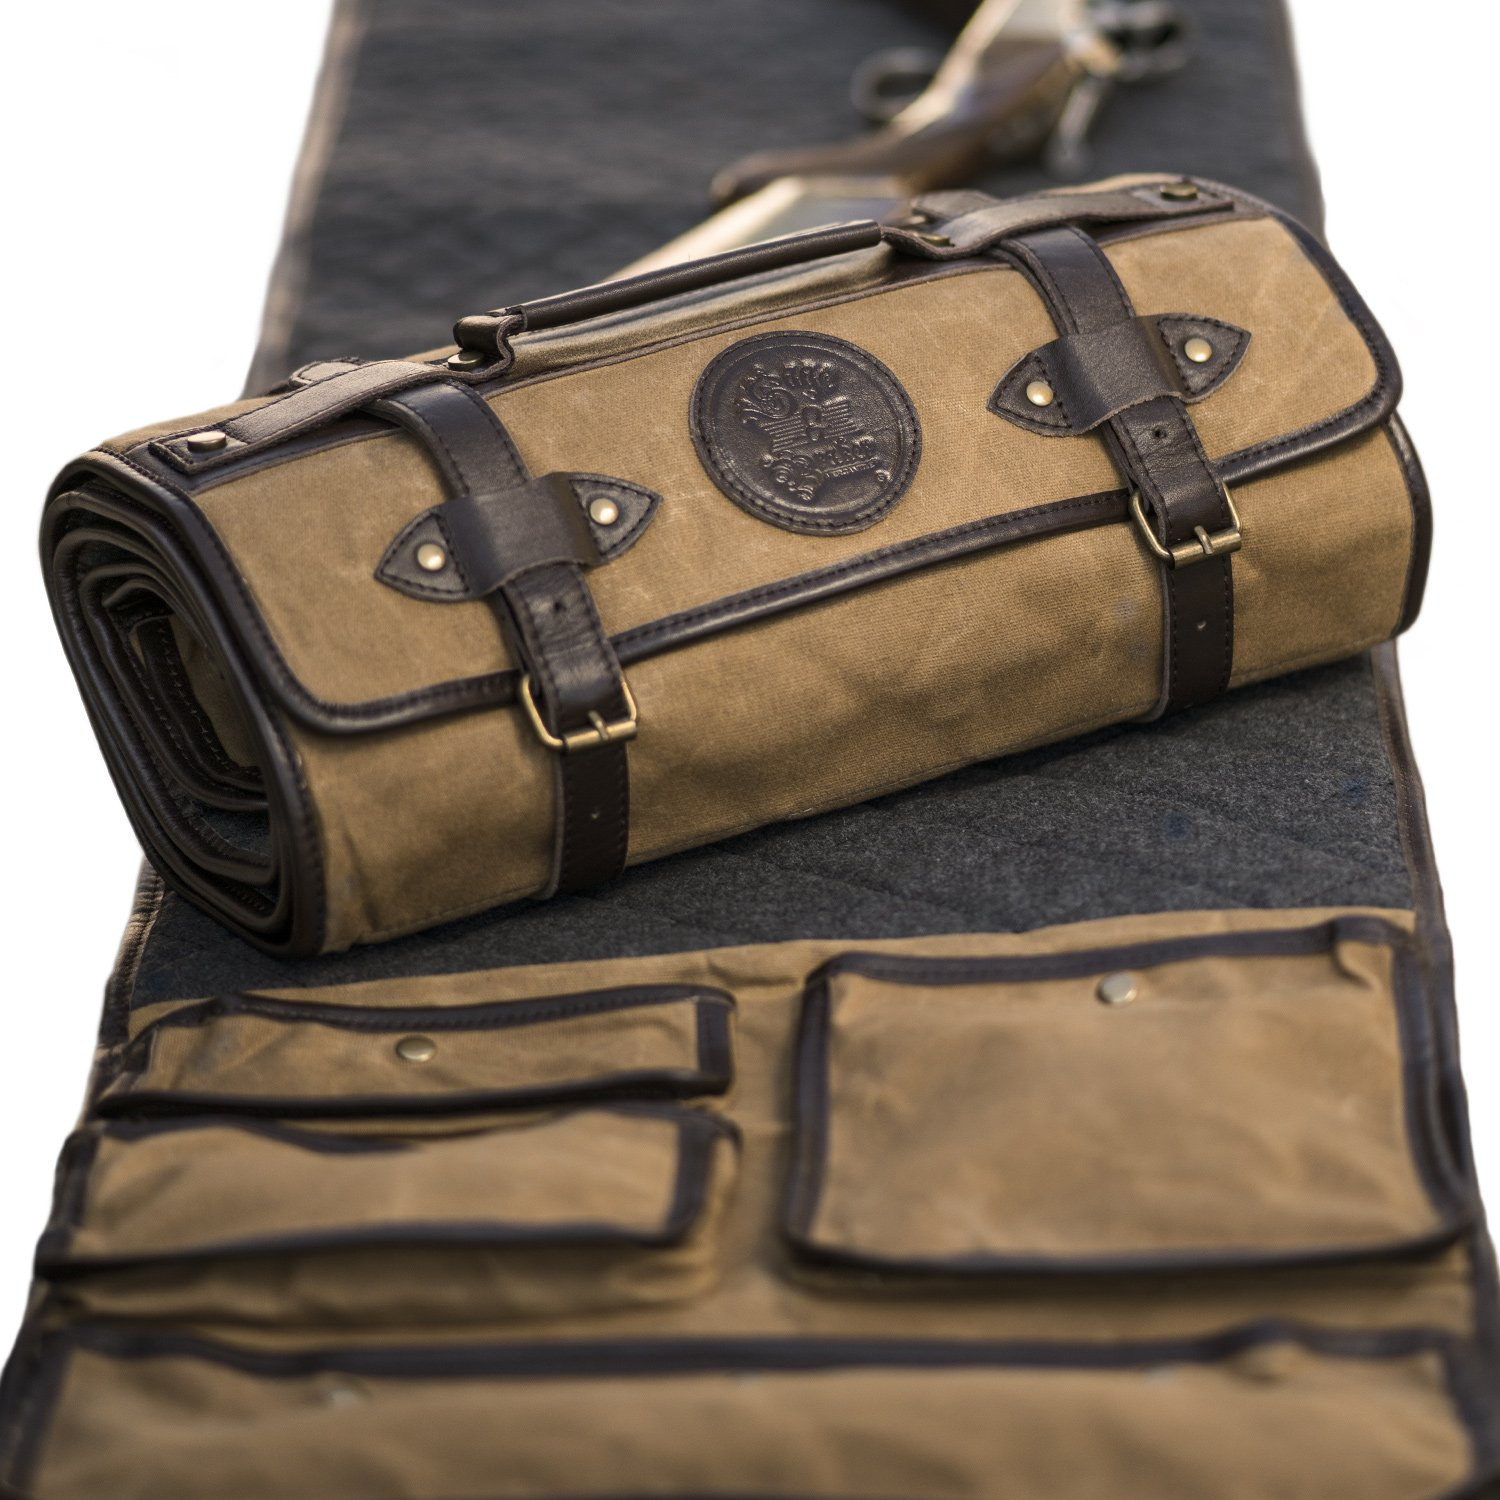 GUN CLEANING MAT by Sage and Braker. Made From Waxed Canvas, Wool and Leather. by Sage and Braker Mercantile